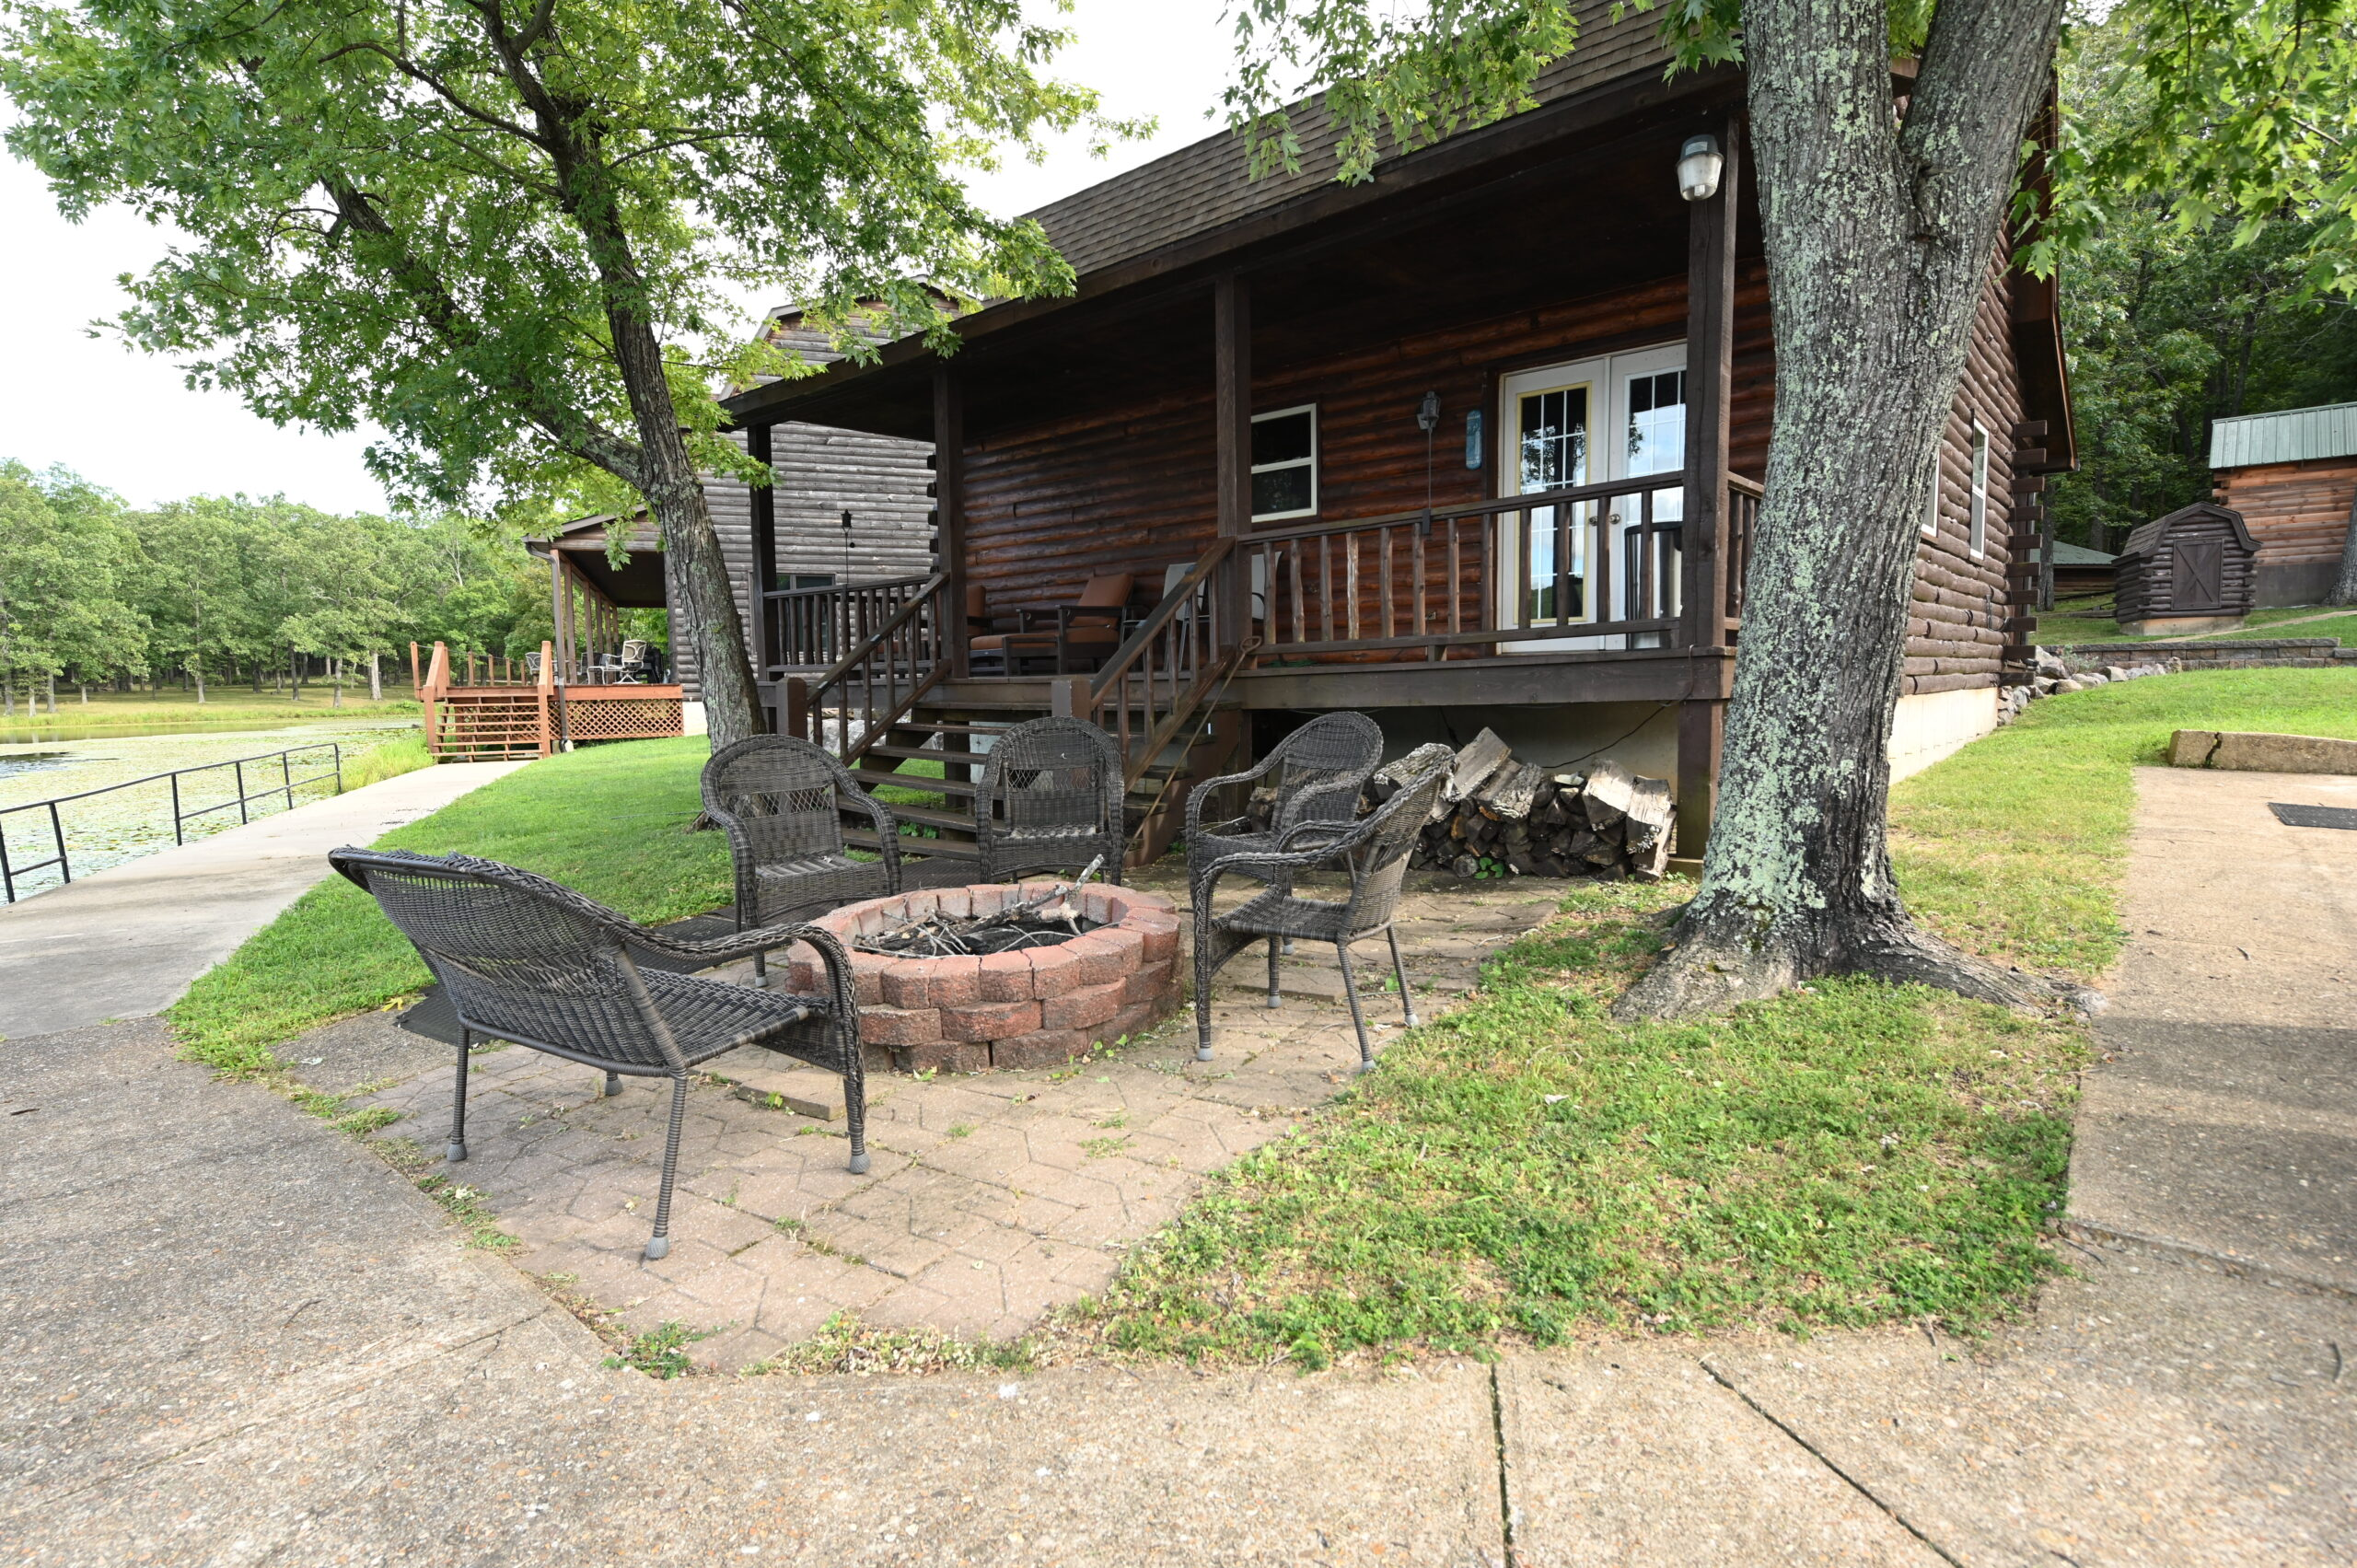 Primary Cabin Rental Fire Pit